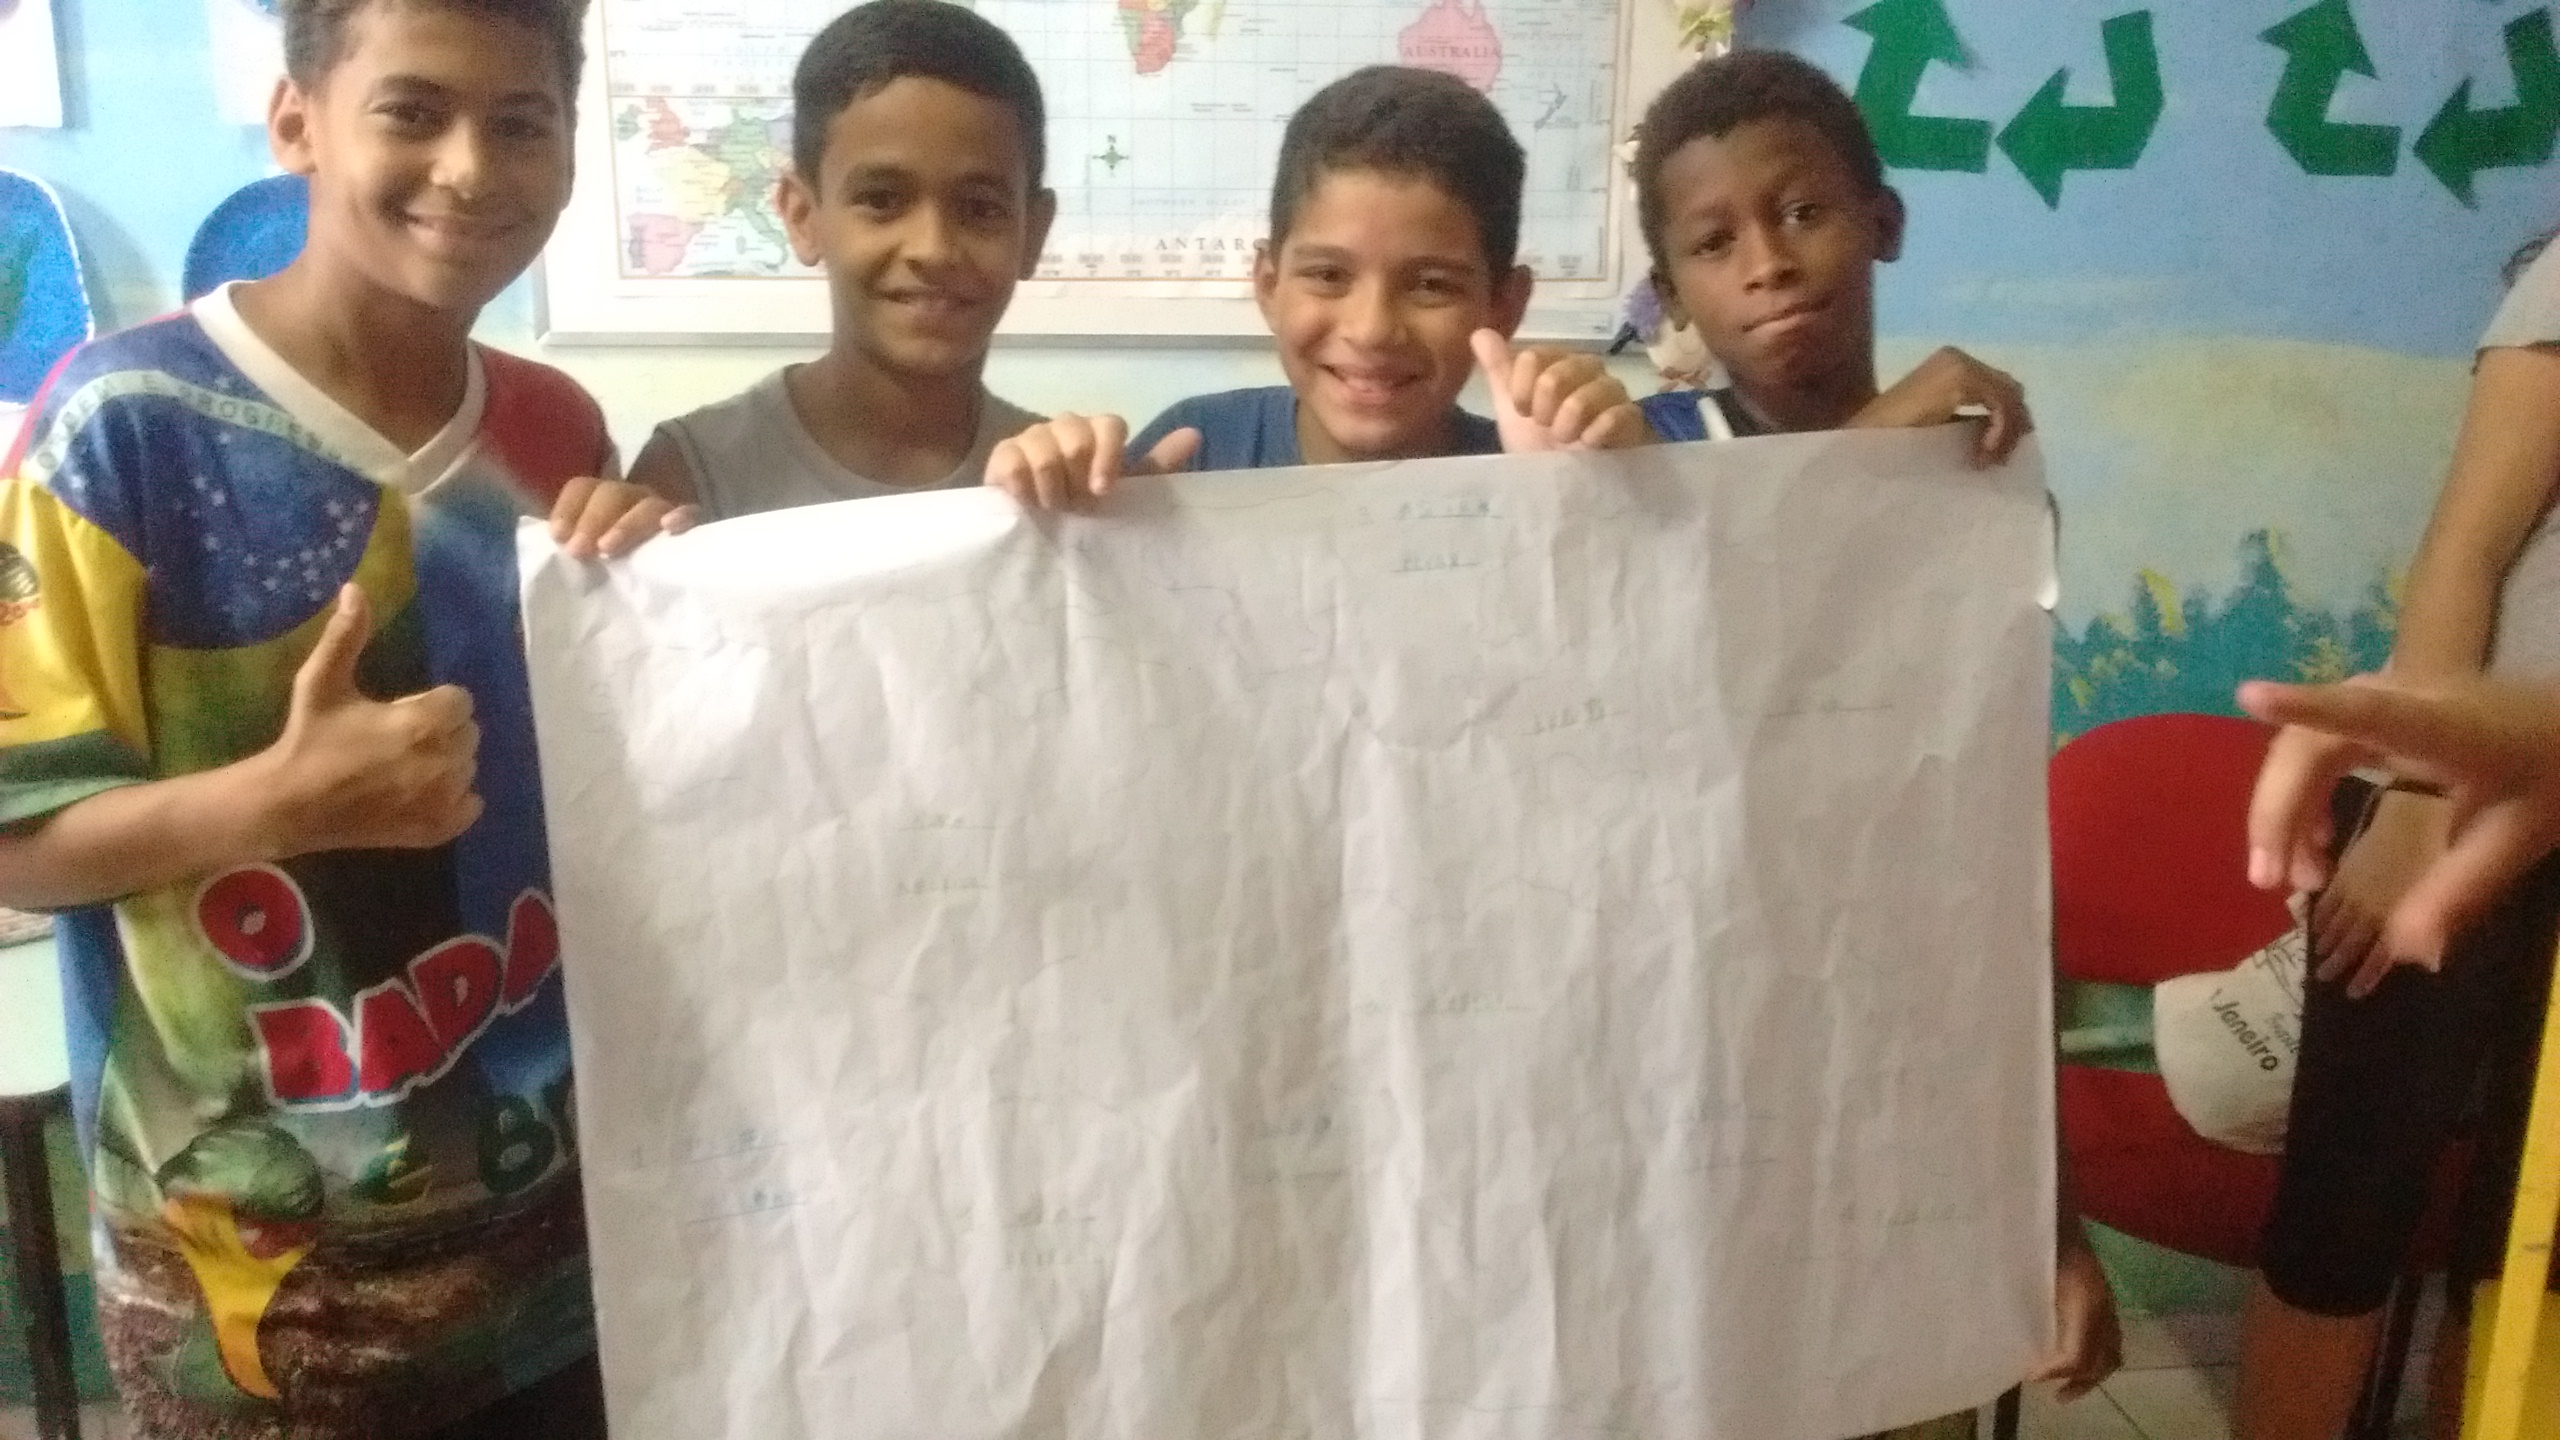 A group with their world map